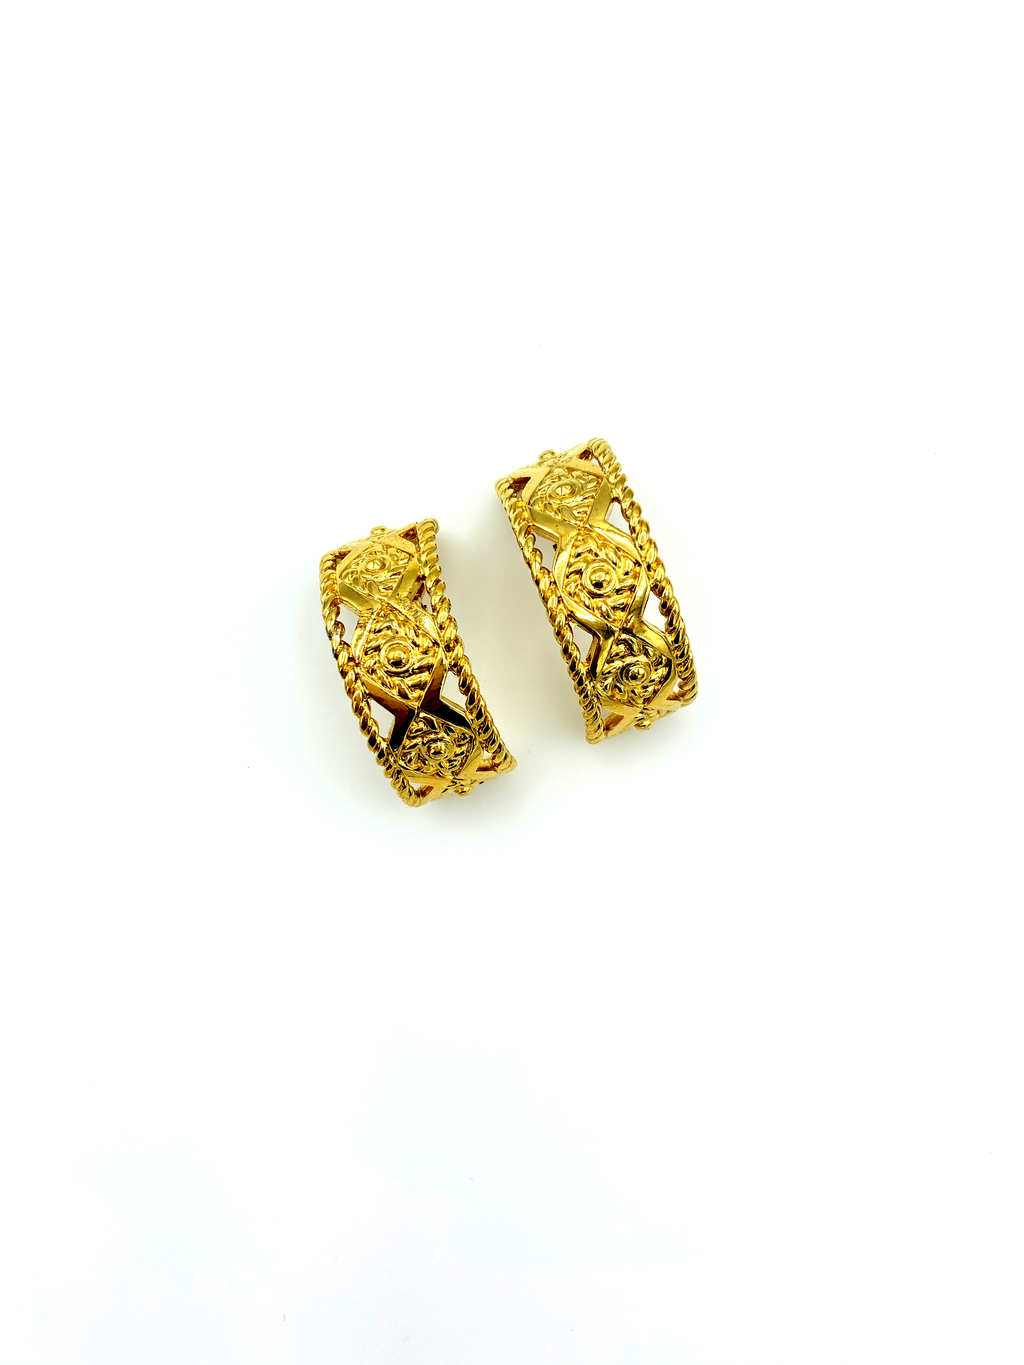 Givenchy Gold Geometric Half Hoop Vintage Clip On Earrings-Sustainable Fashion with Vintage Style-Trending Designer Fashion-24 Wishes